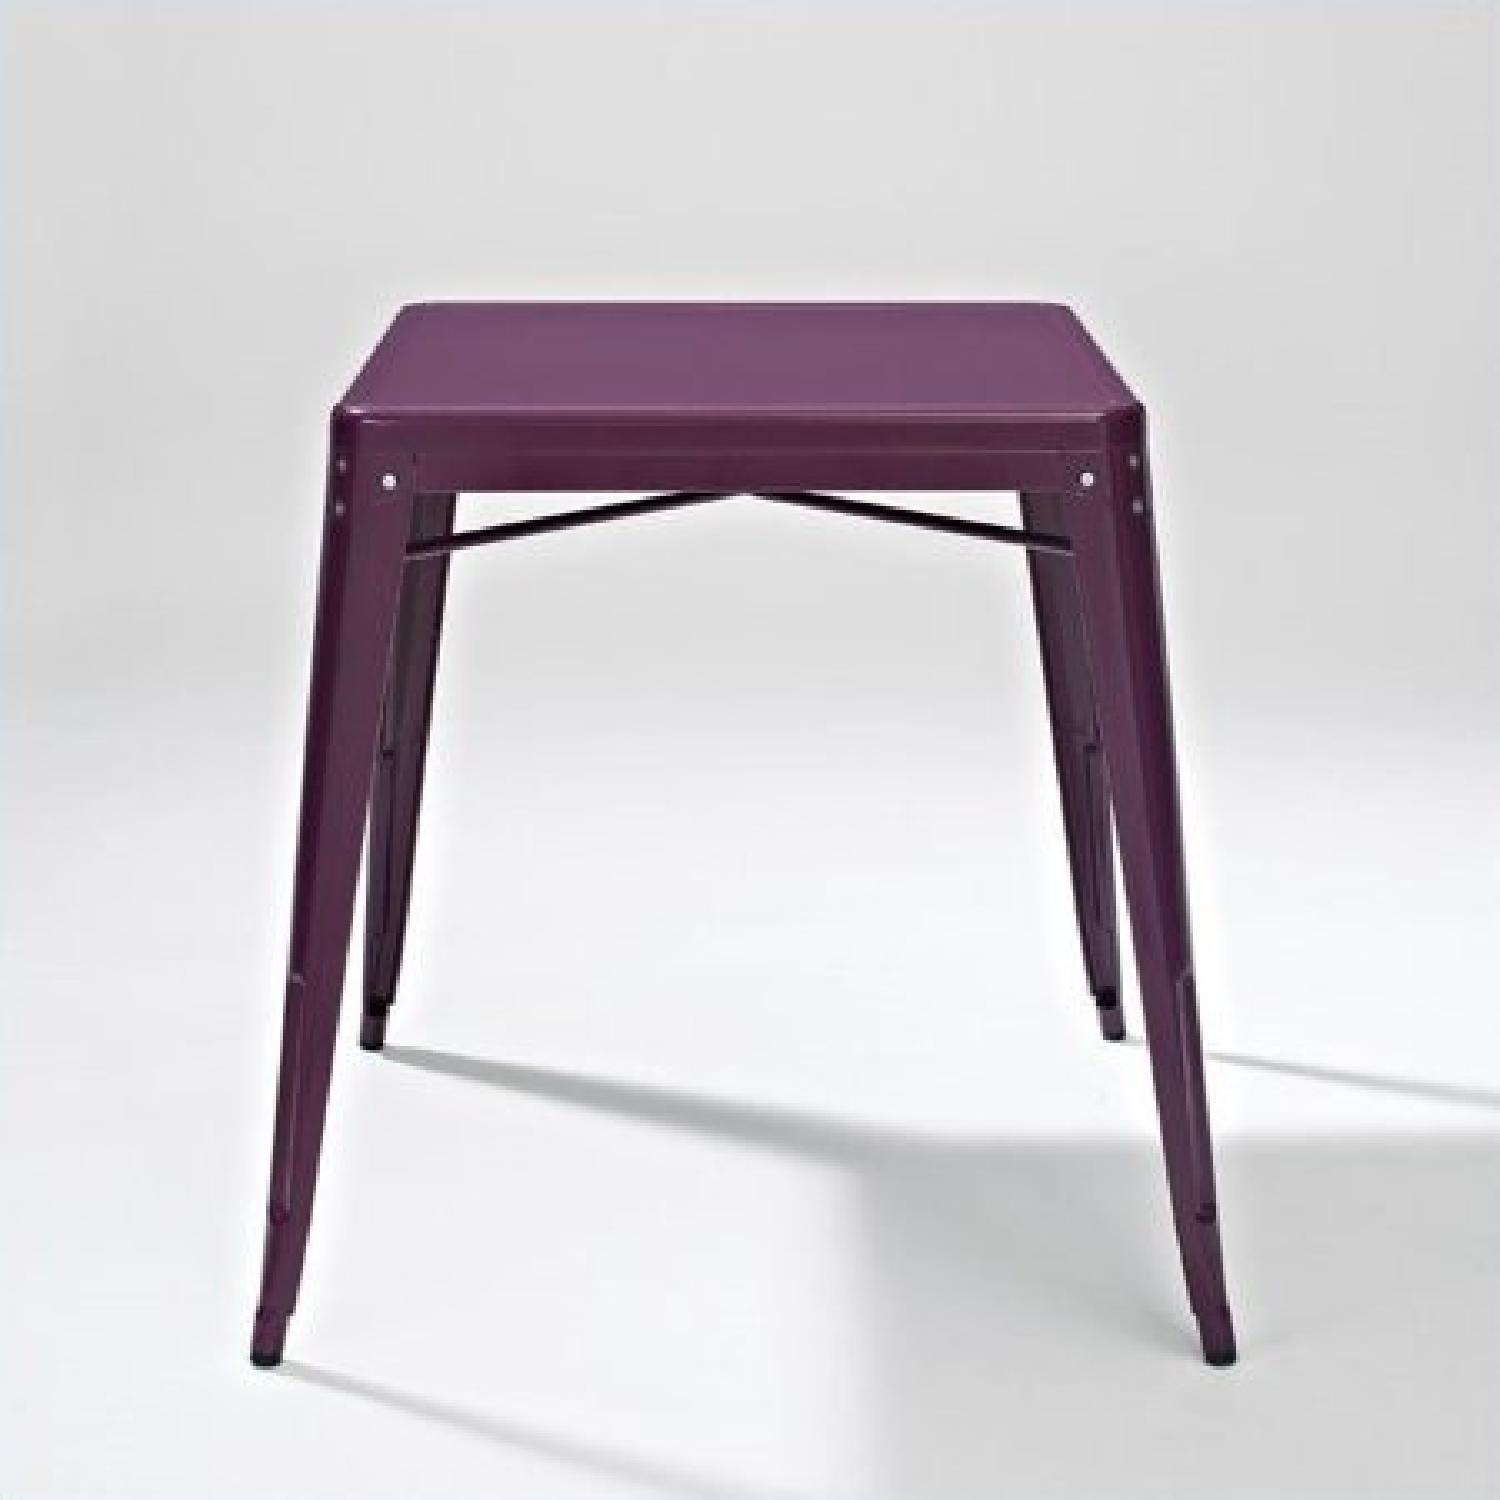 Crosley Metal Cafe Table in Purple - image-1